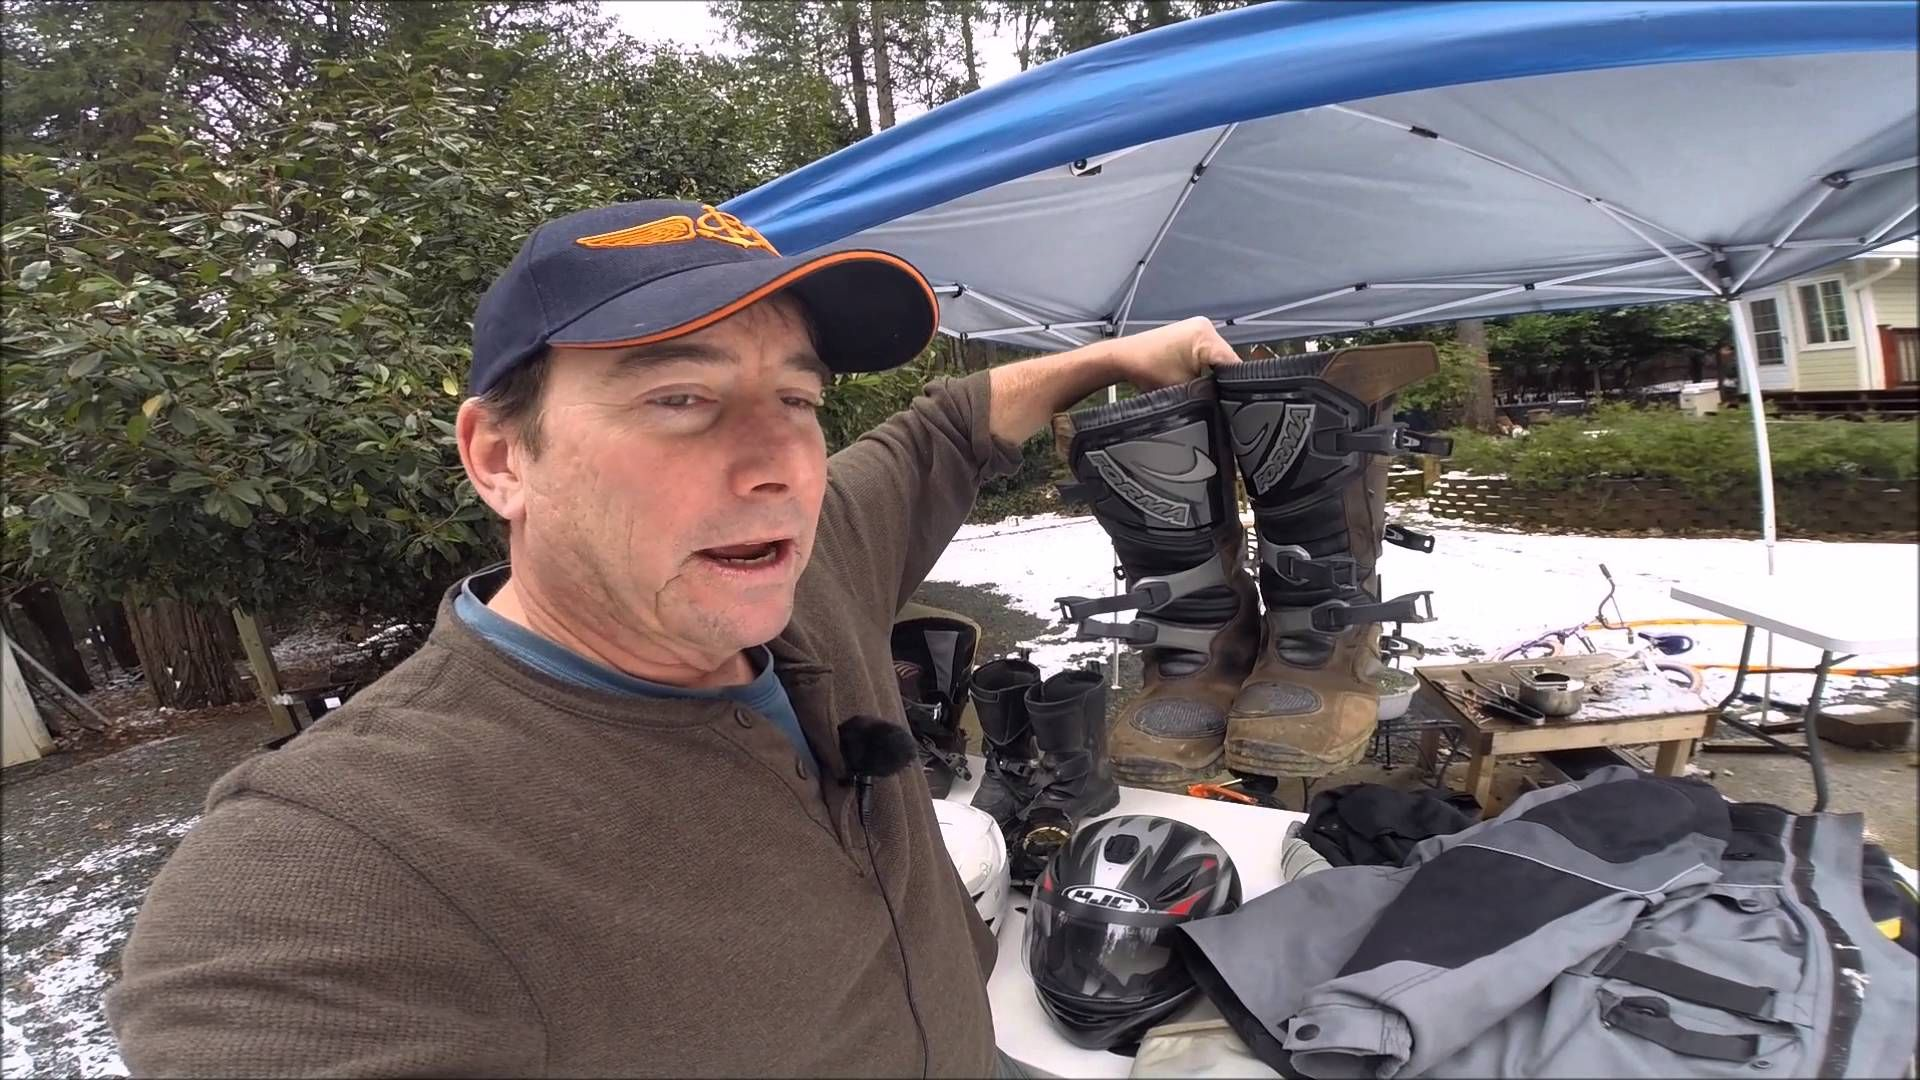 Adventure Riding gear and Spills